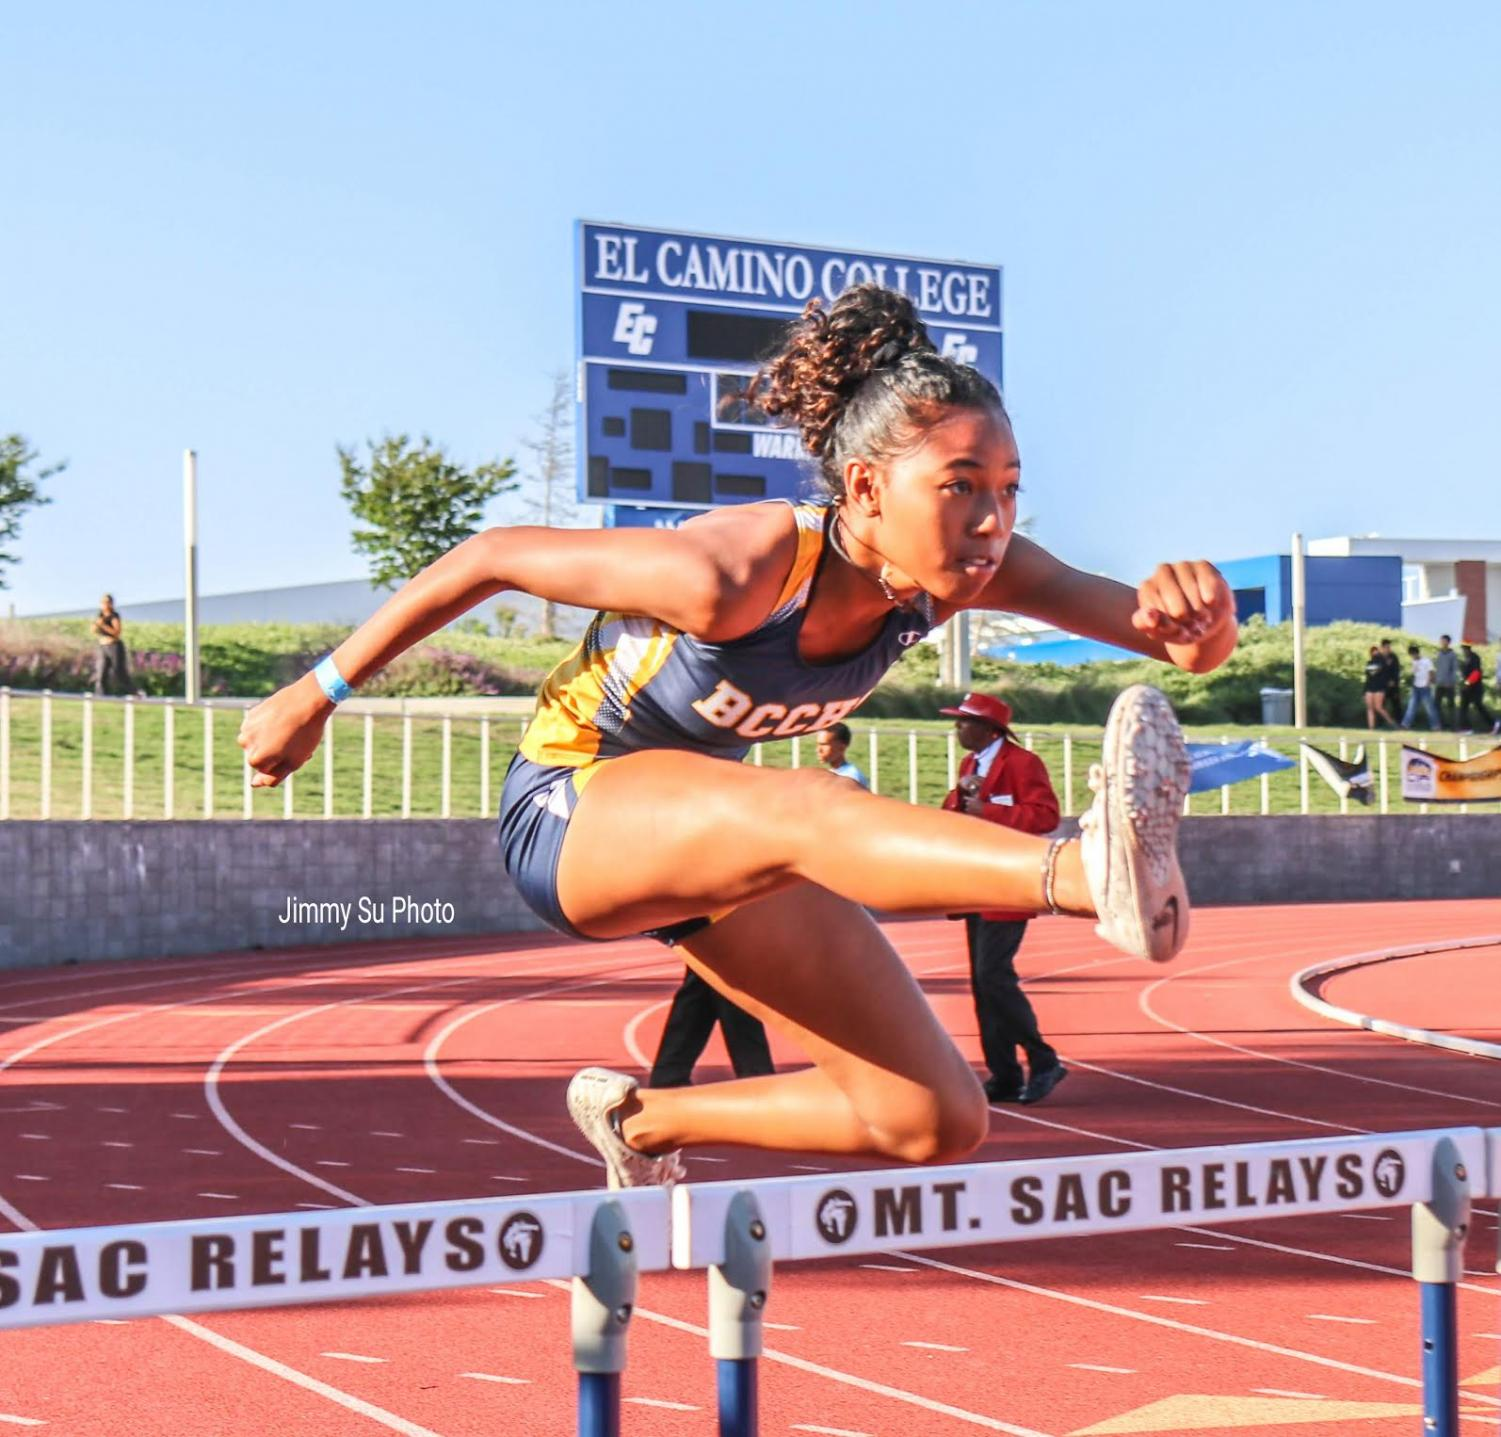 Sophomore Cassia Ramelb practices runs over a hurdle for her 100 meter hurdle race on May 16.